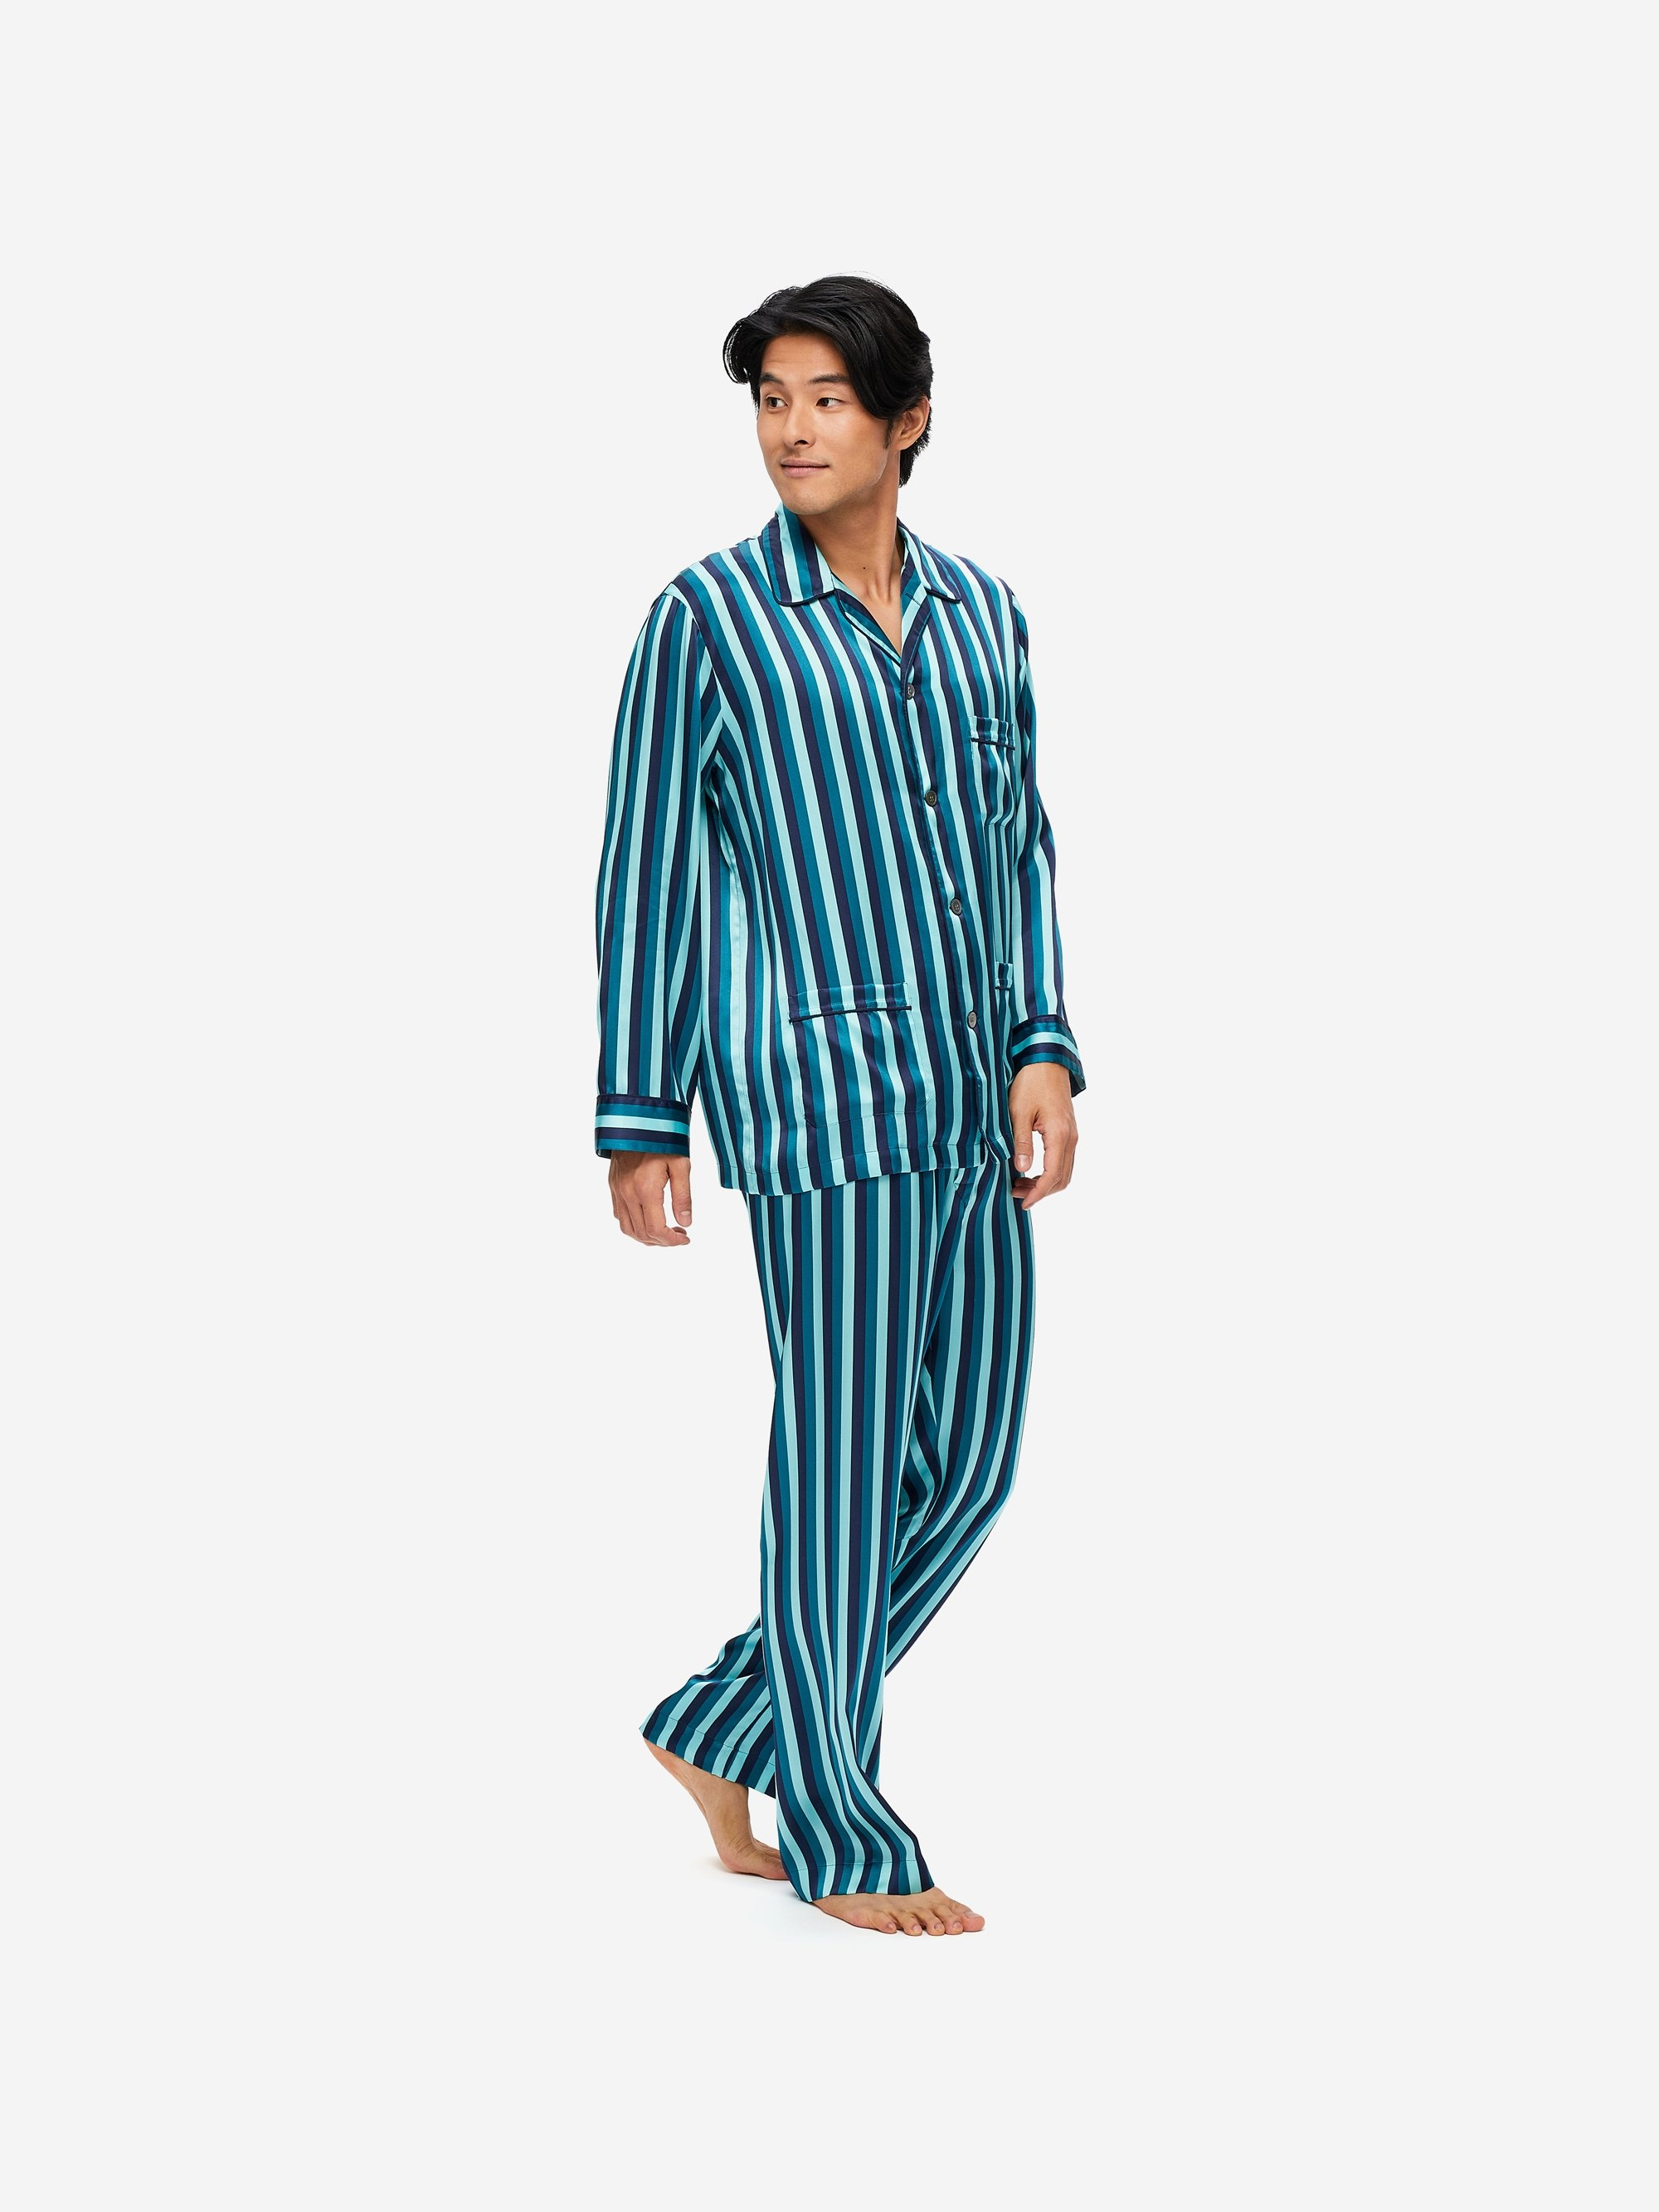 Men's Classic Fit Piped Pyjamas Brindisi 64 Pure Silk Satin Multi